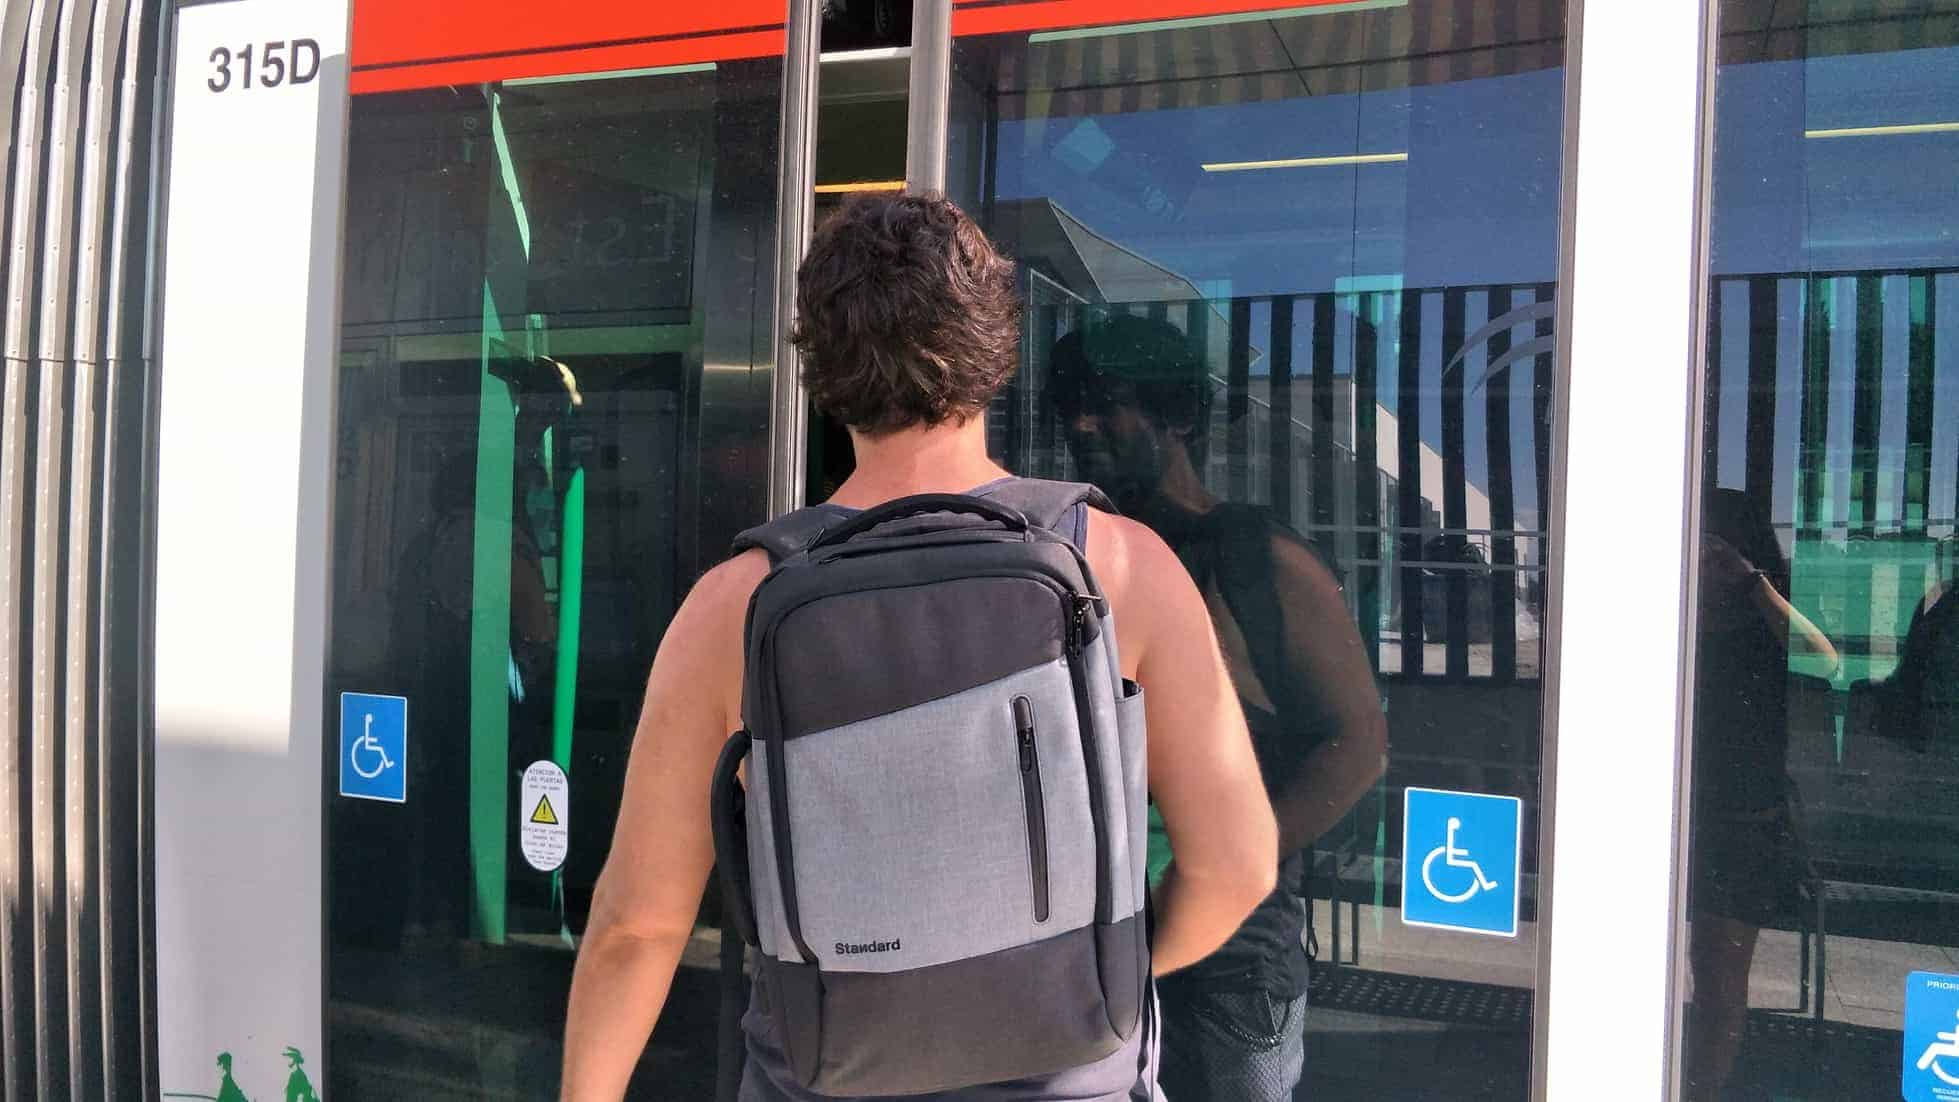 Dave gets on the metro wearing the Standard Luggage Daily Backpack